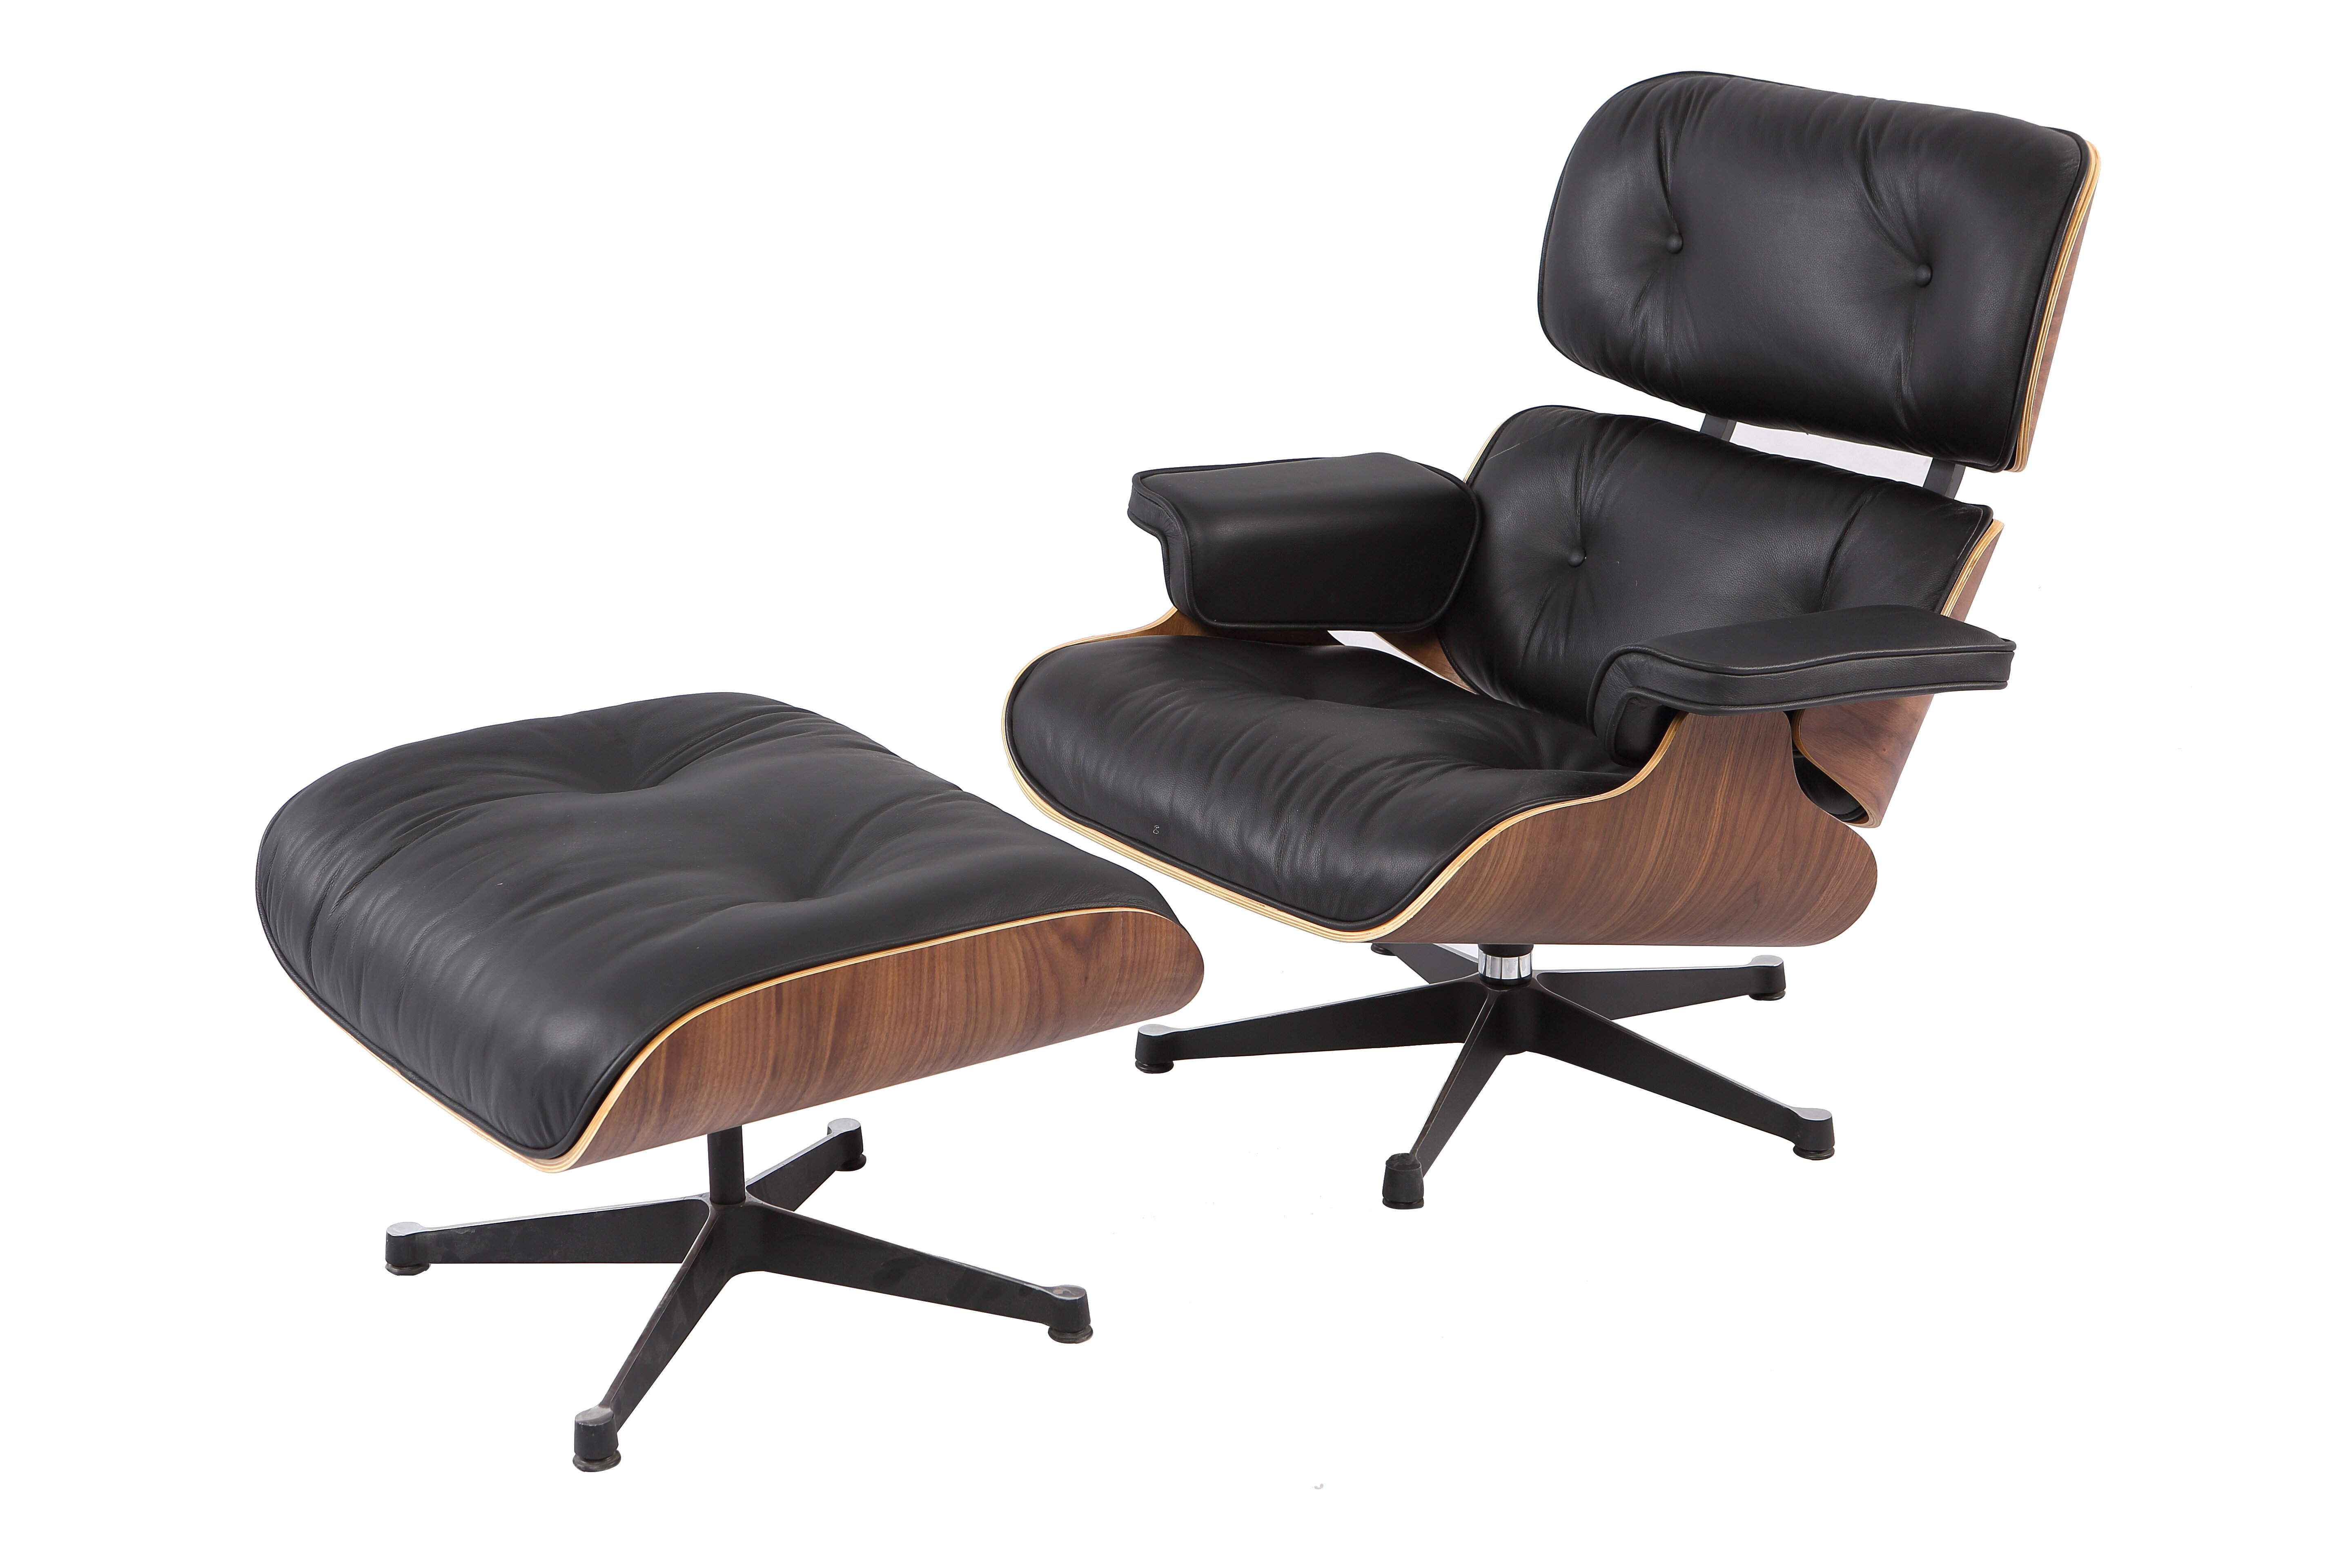 Corrigan Studio Emilio Mid Century Swivel Lounge Chair and Ottoman